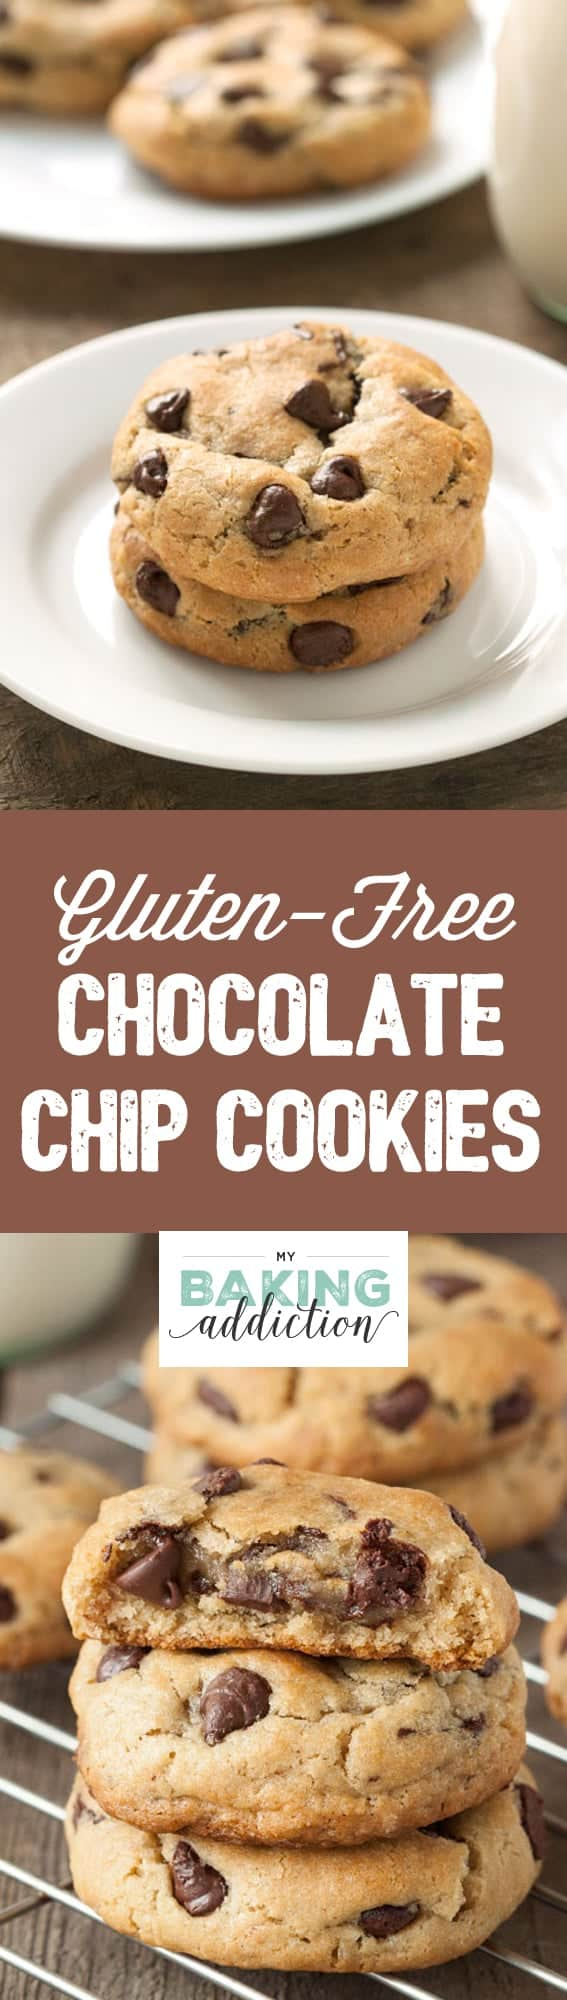 Gluten-Free Chocolate Chip Cookies | My Baking Addiction